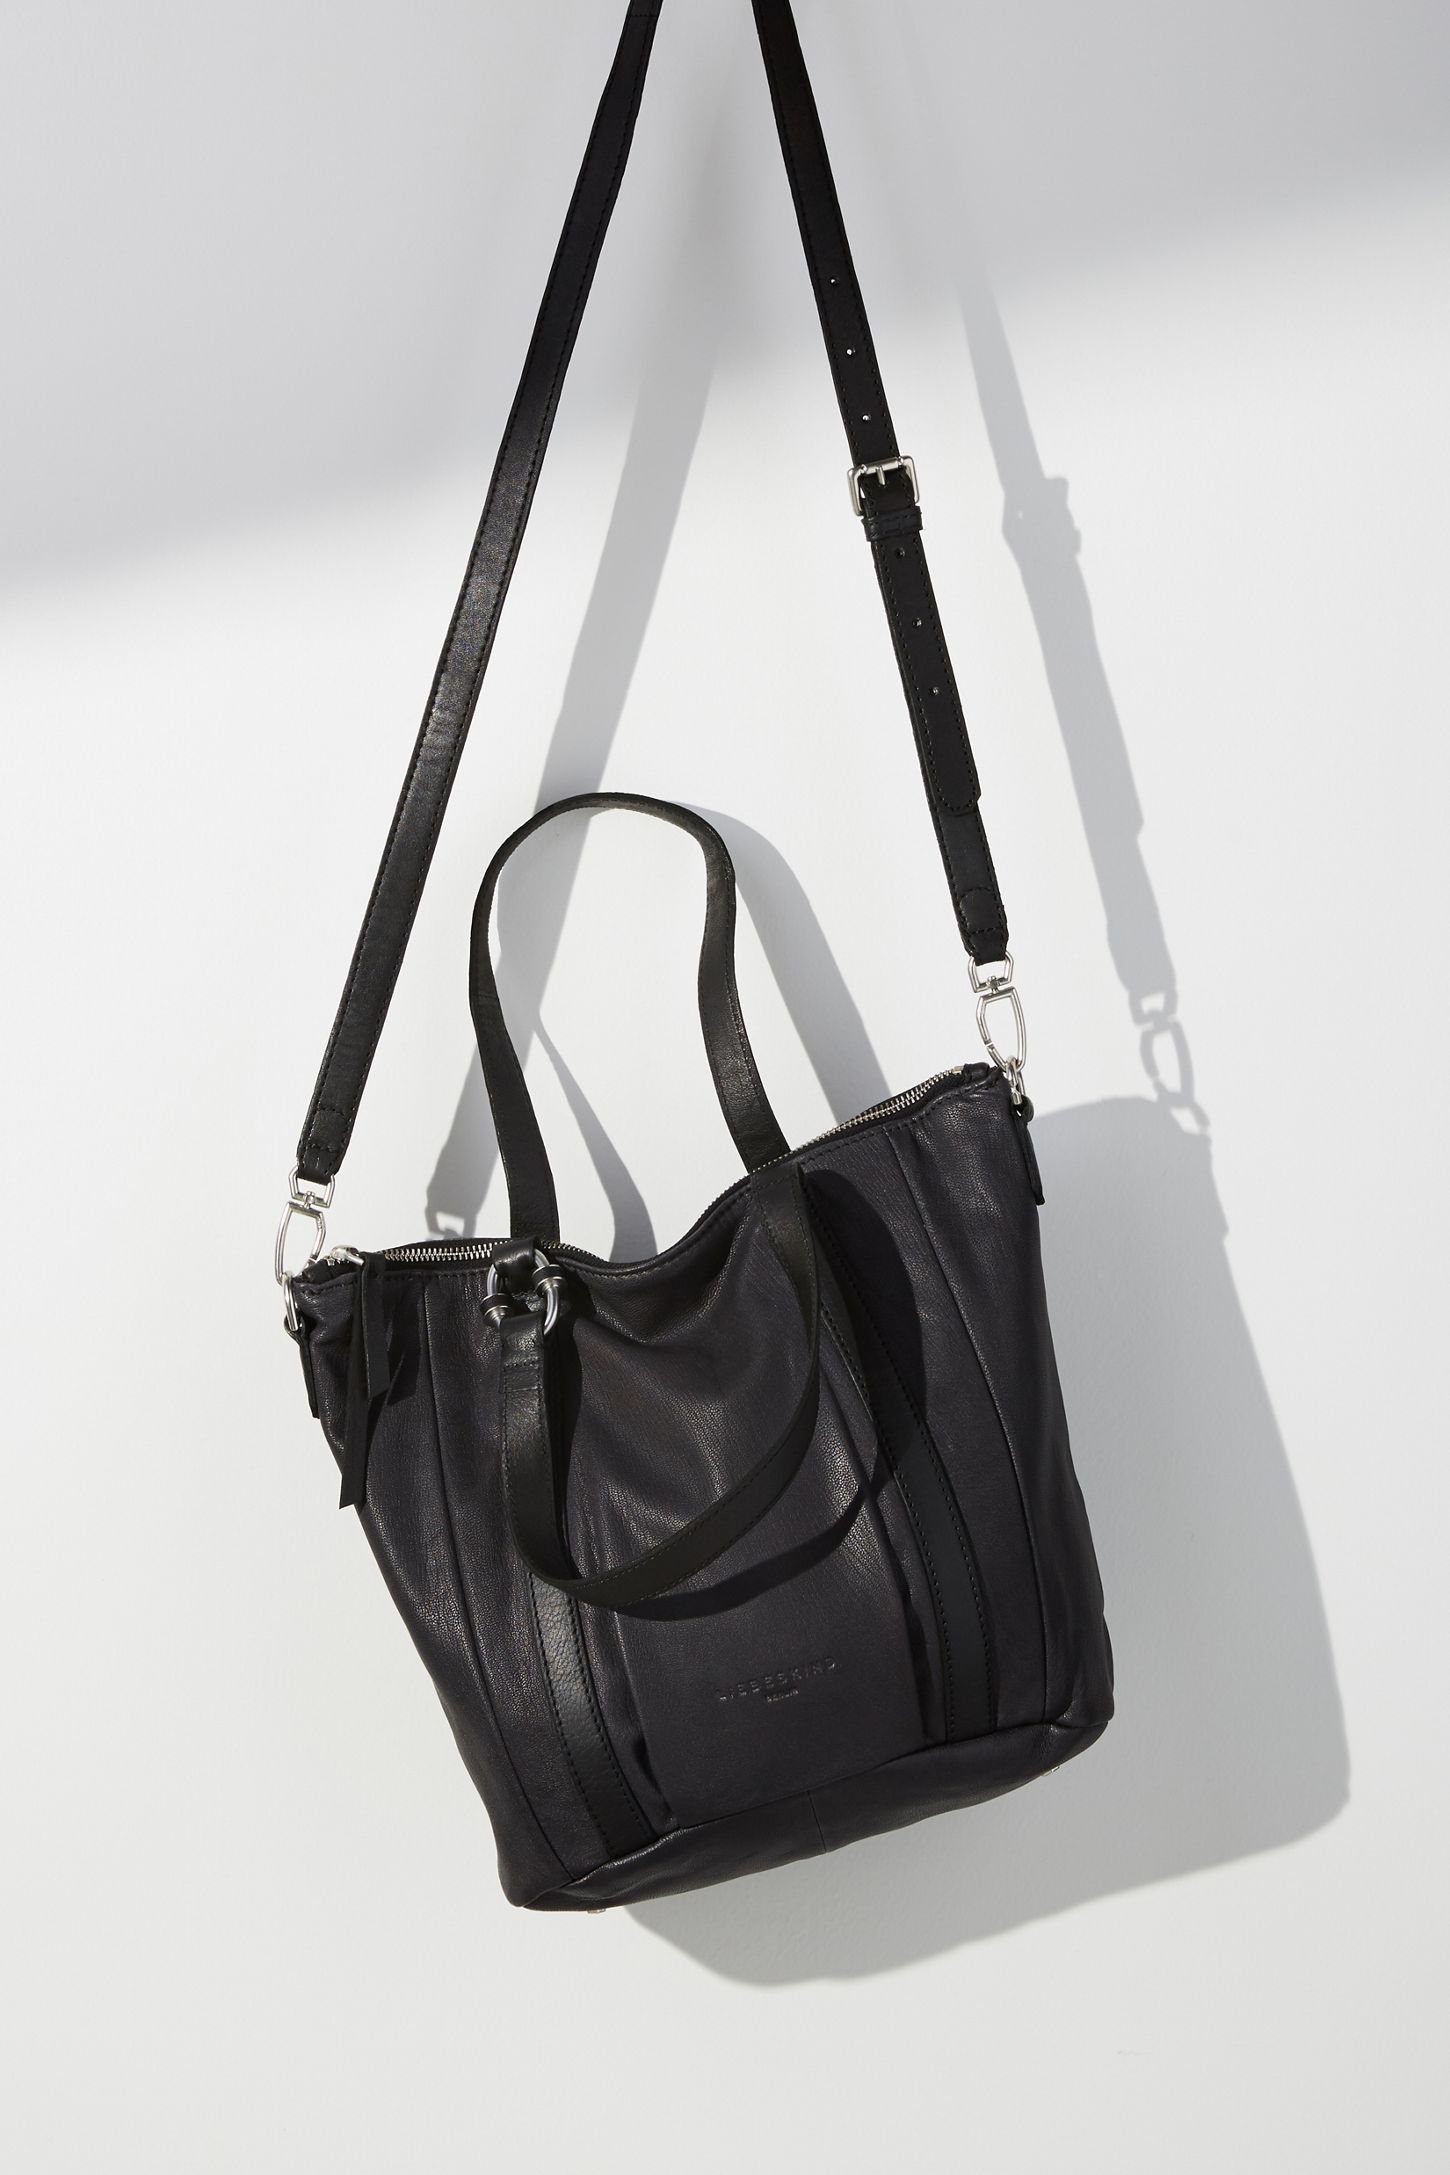 a28be14f0d9 Liebeskind Gina Tote Bag   Anthropologie